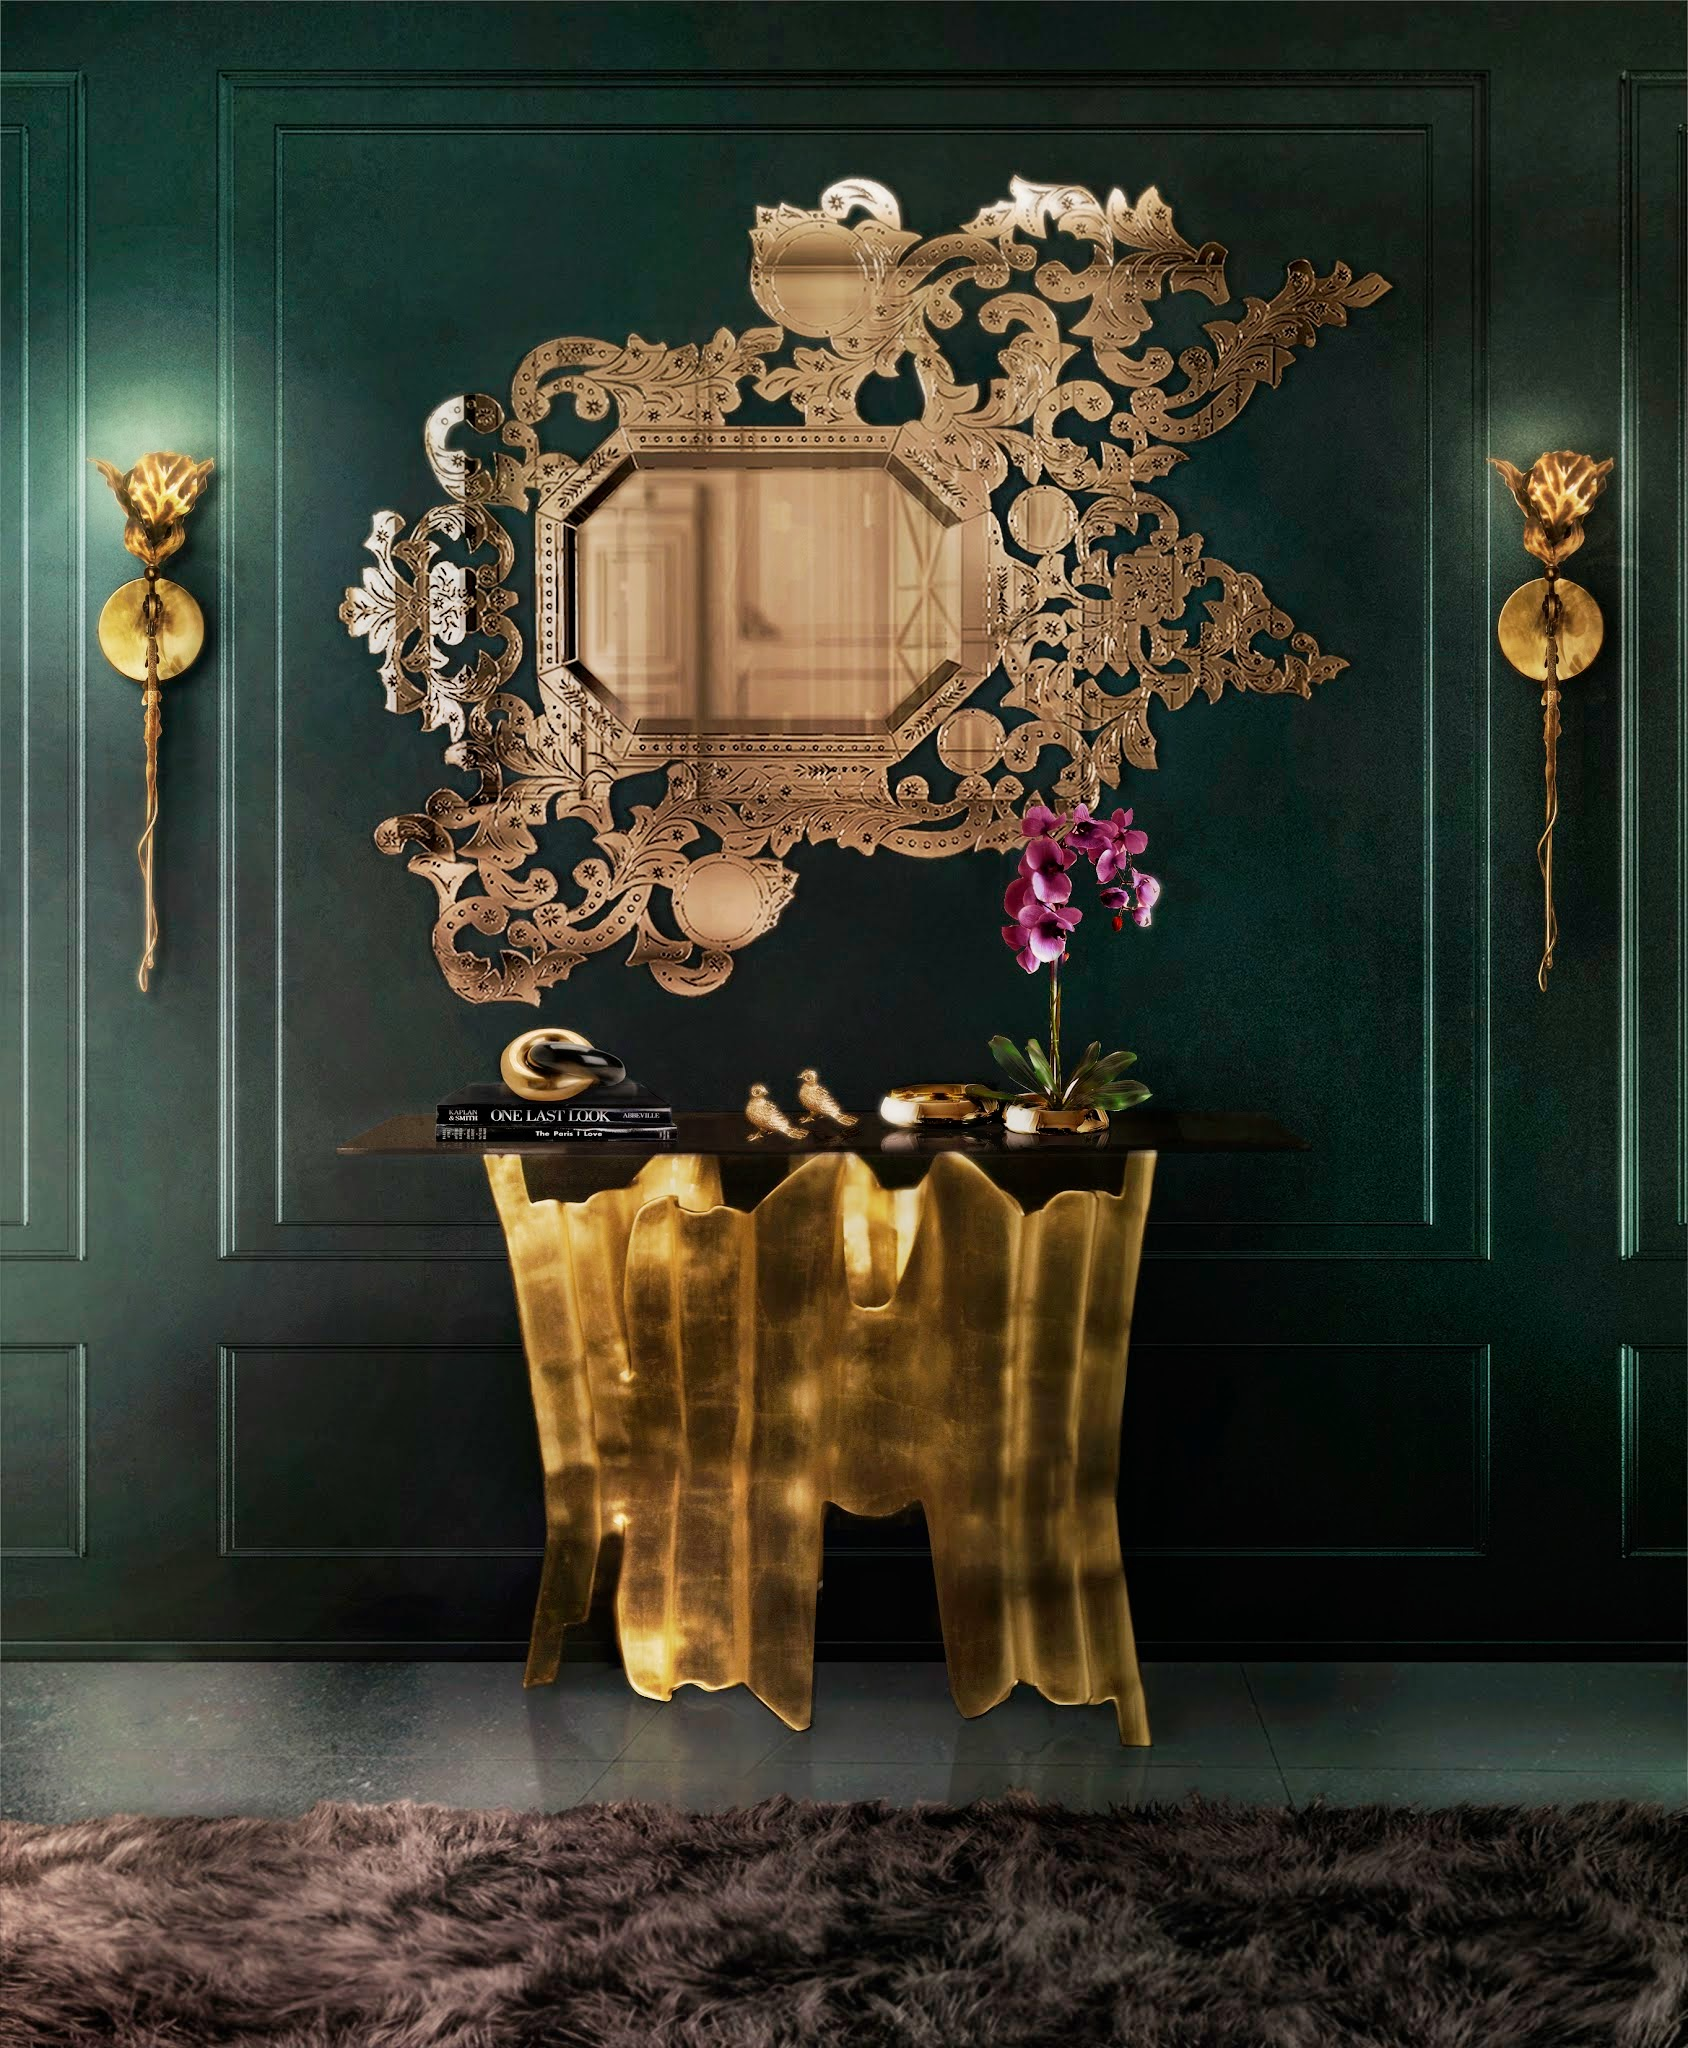 addicta-mirror-obssedia-console-flora-sconce-koket-projects elegant sconces Elegant Sconces for your Living Room Design addicta mirror obssedia console flora sconce koket projects